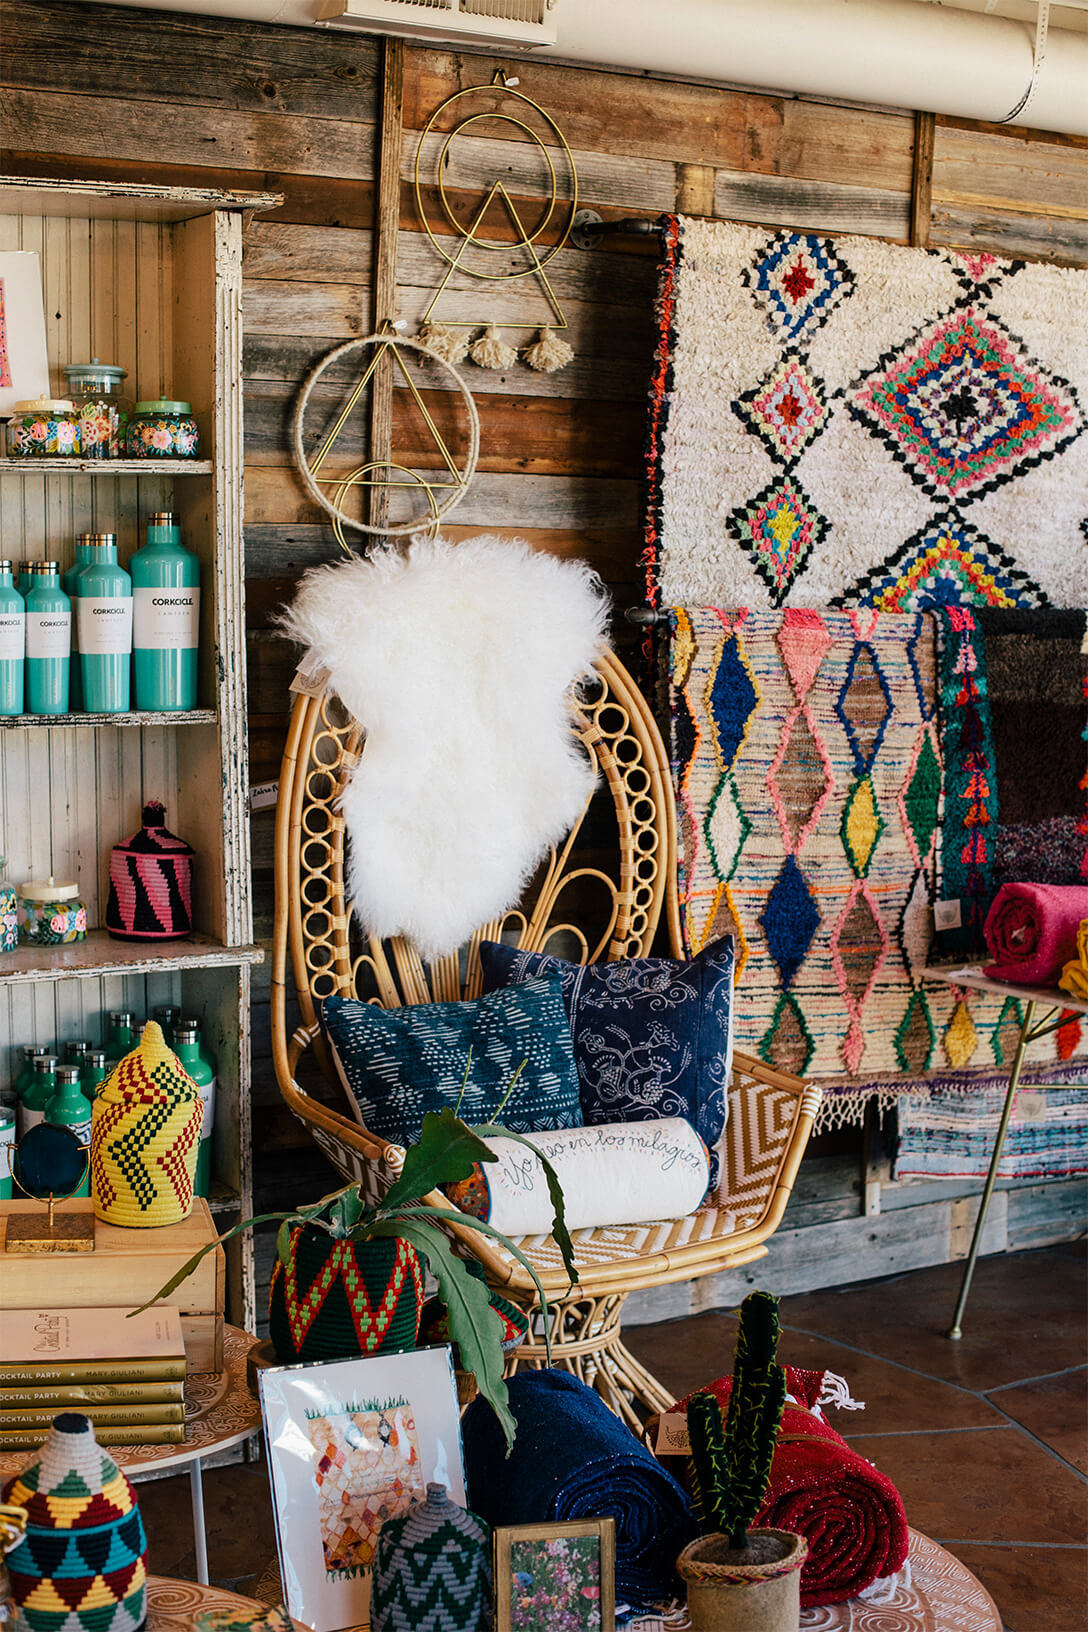 The Gypsy Wagon pillows and tapestries